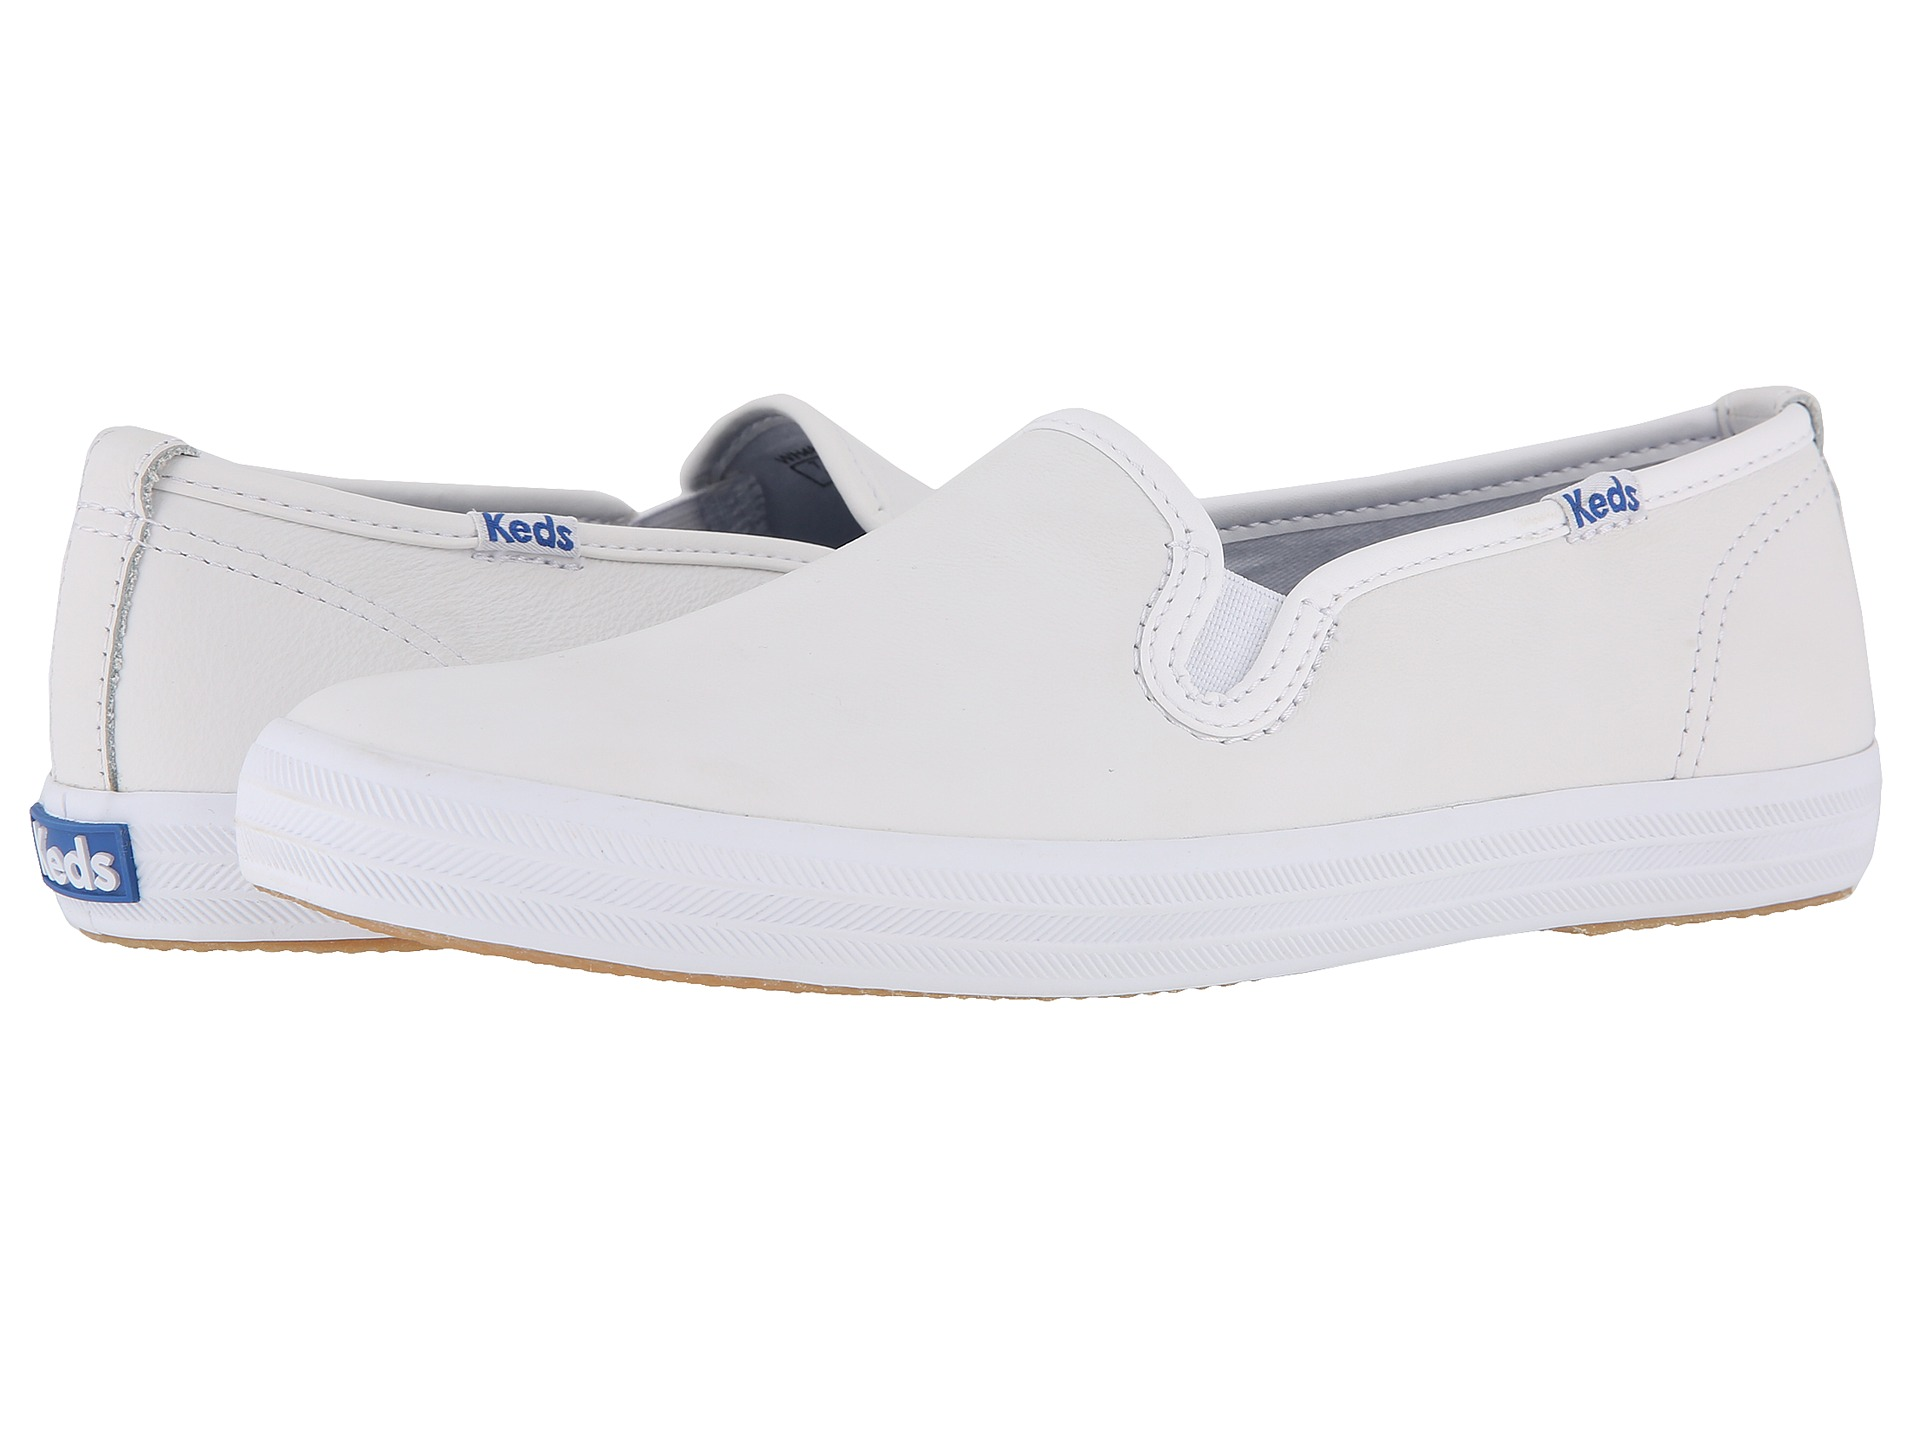 keds champion shoes review